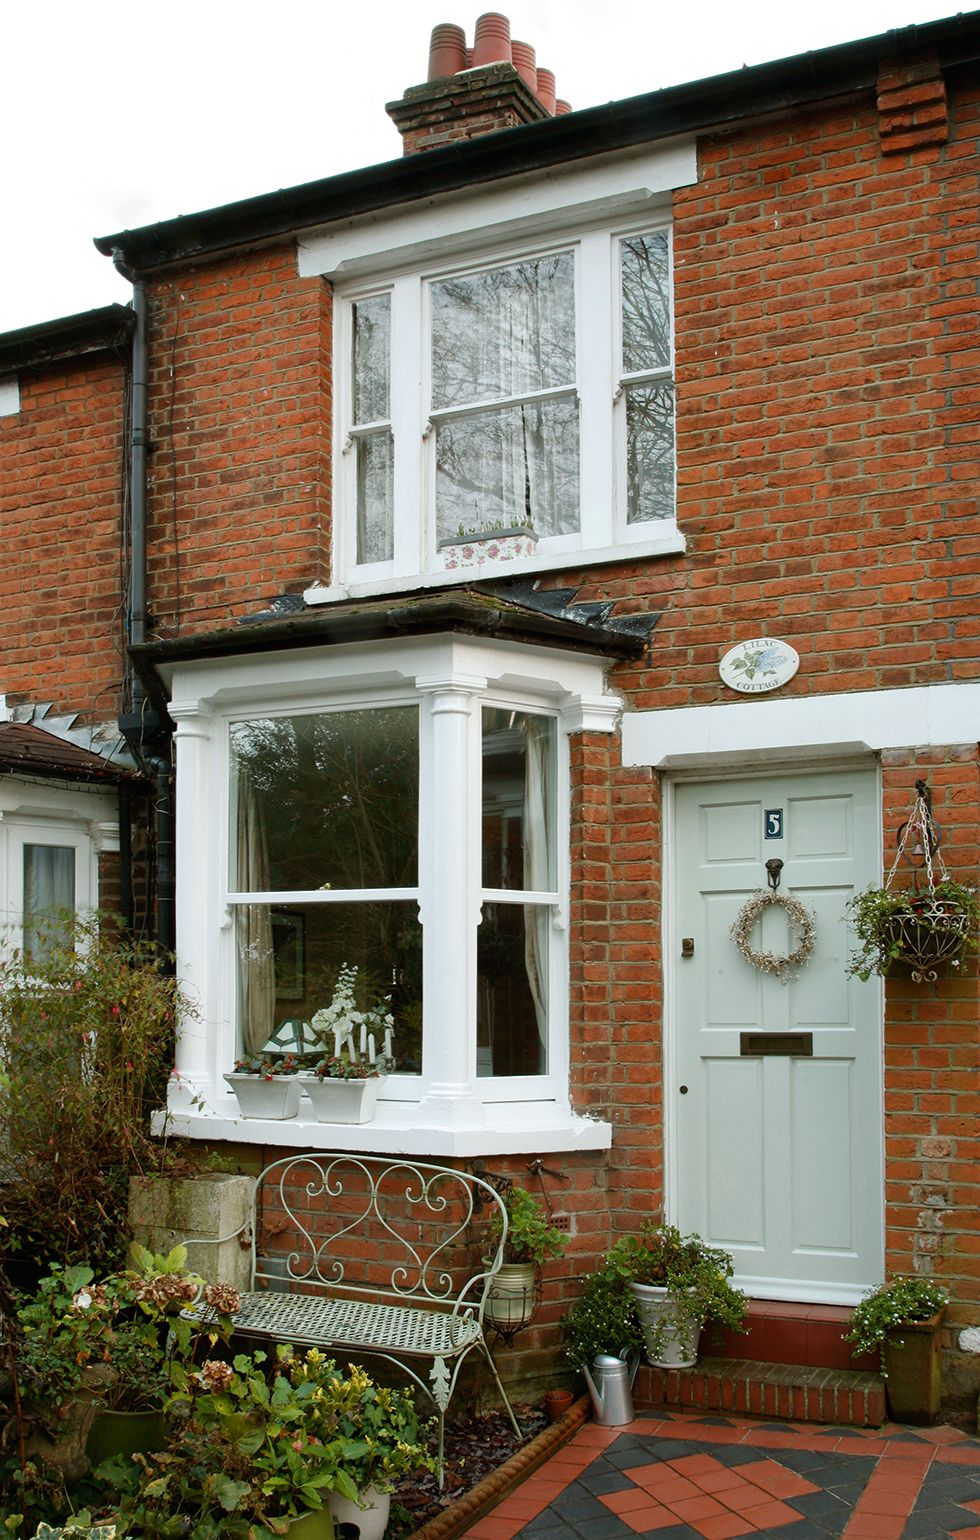 Mesmerizing Window Design For Small House To Be Inspired By: Real Home: Victorian Cottage Decorated With Vintage Finds